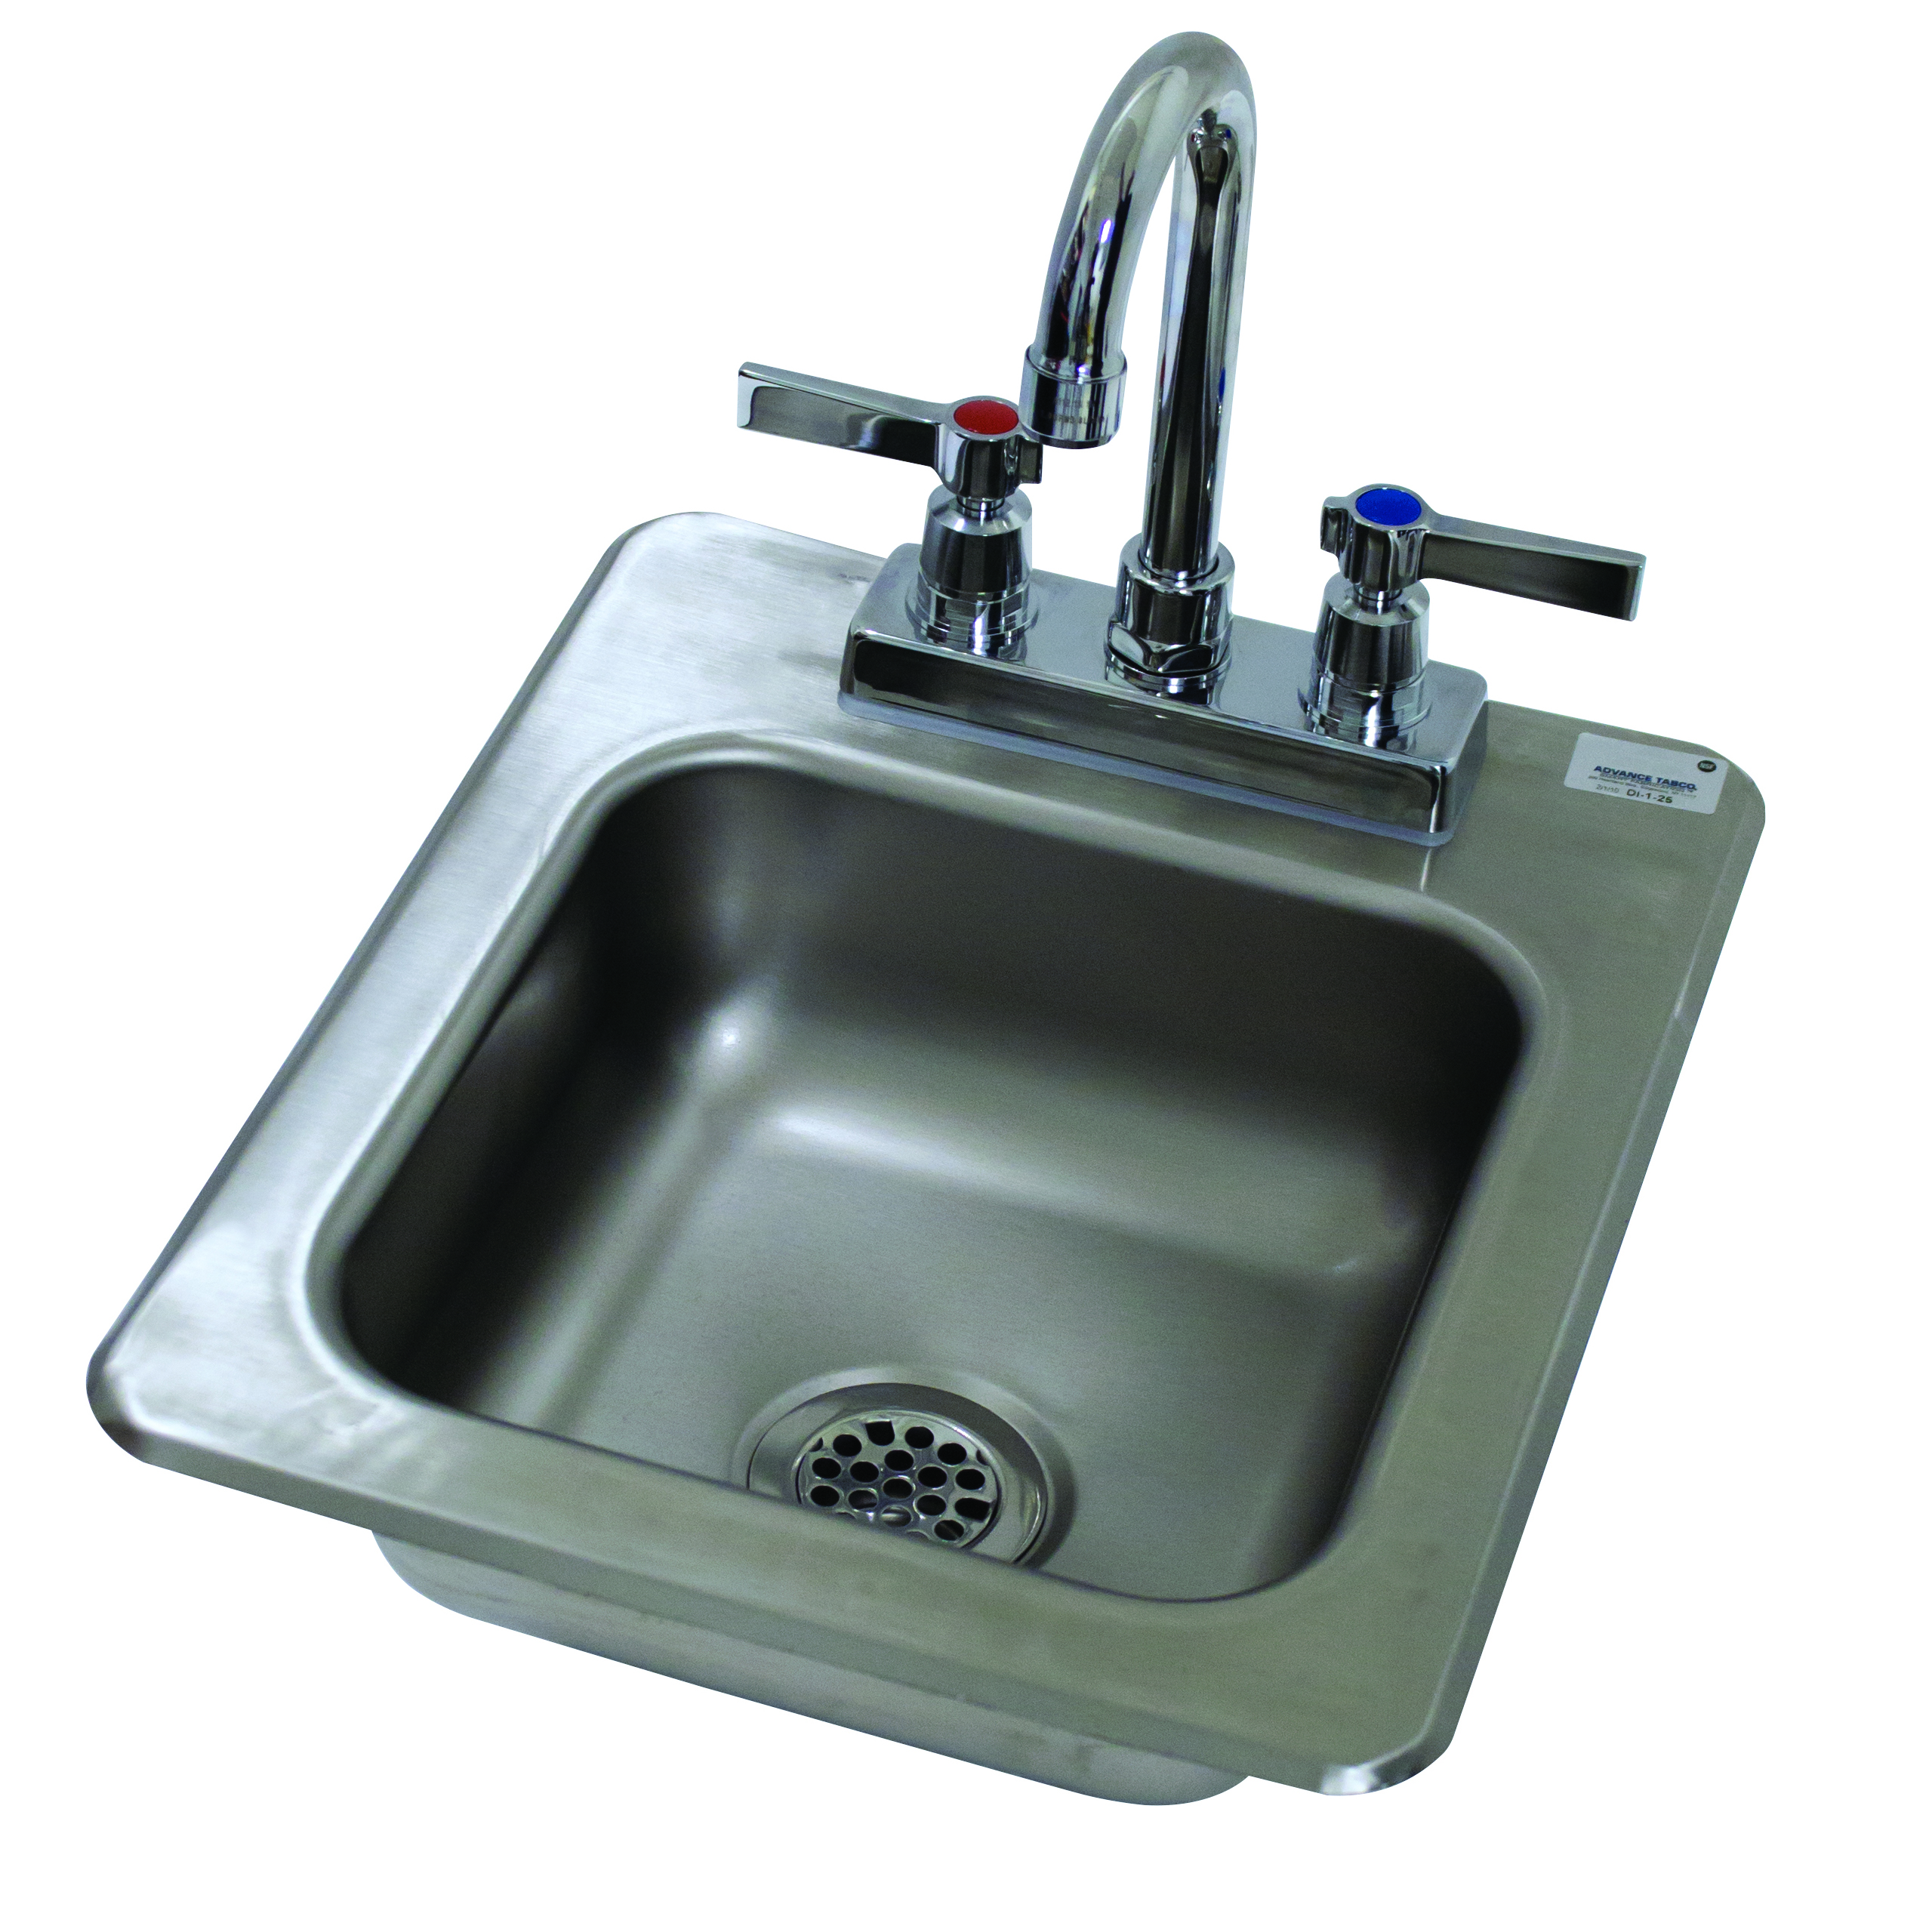 Advance Tabco DI-1-25 sink, drop-in